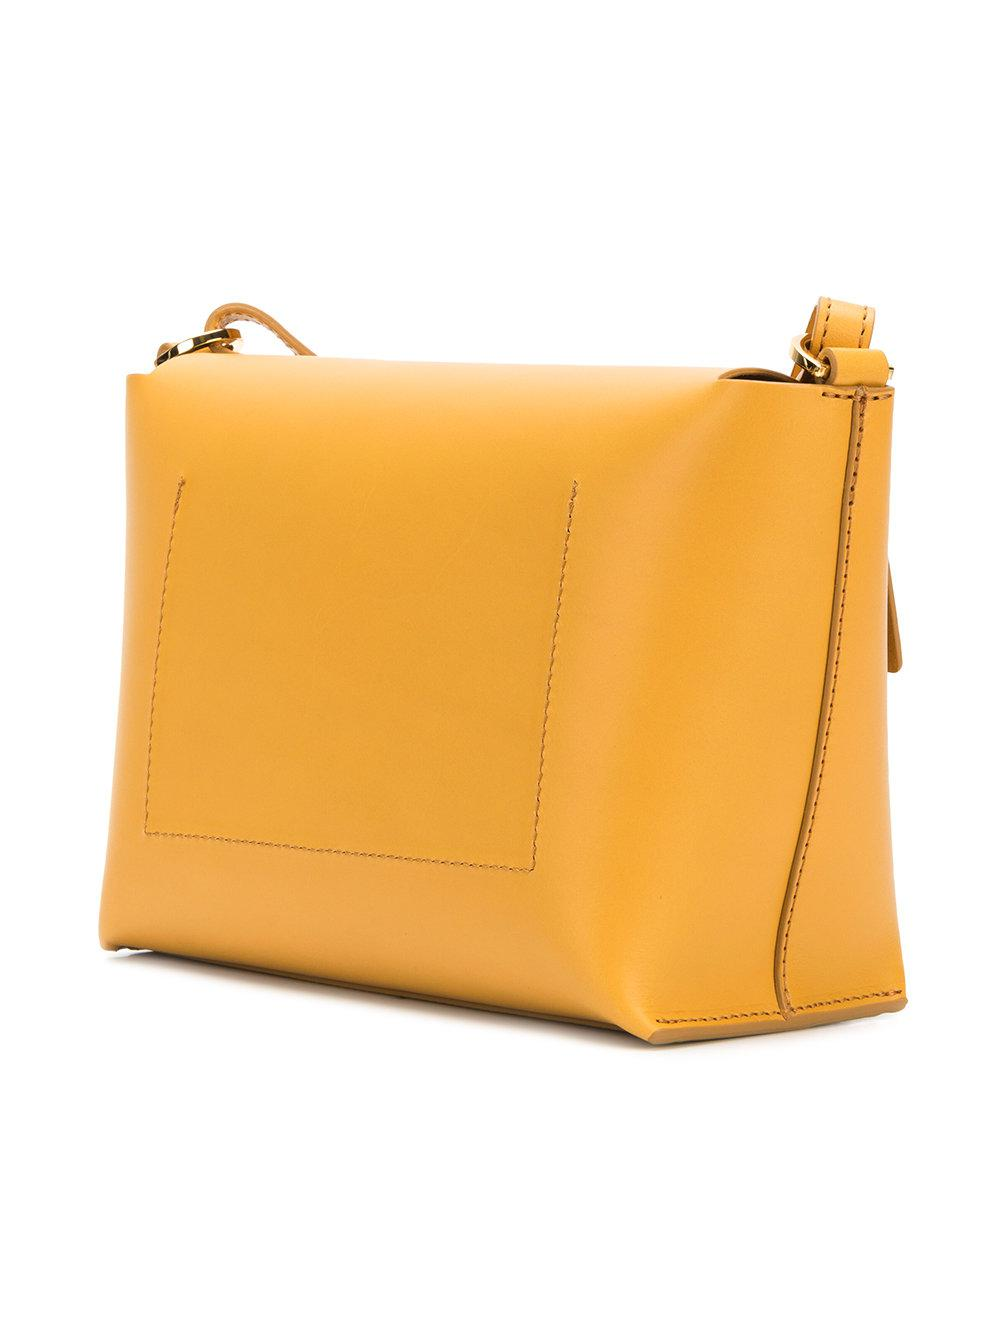 Sophie Hulme Leather Pinch Cross Body Bag in Yellow & Orange (Orange)